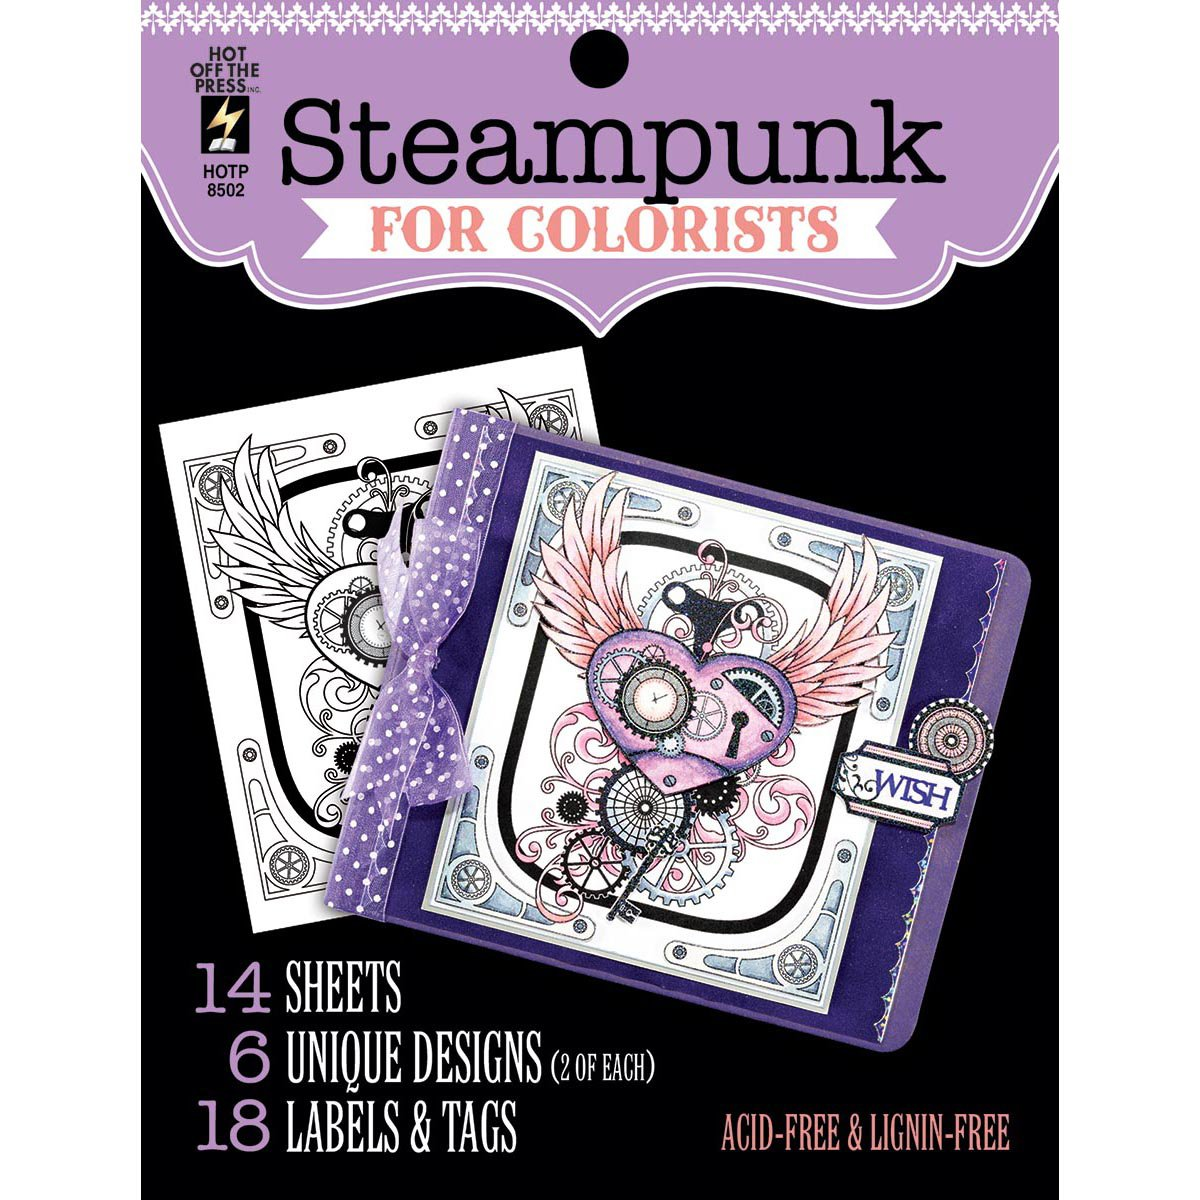 Hot Off the Press For Colorist Book - Steampunk - 14 Black & White Sheets of Heaav Card to Color with Pens Pencils, Markers Gelatos 8502